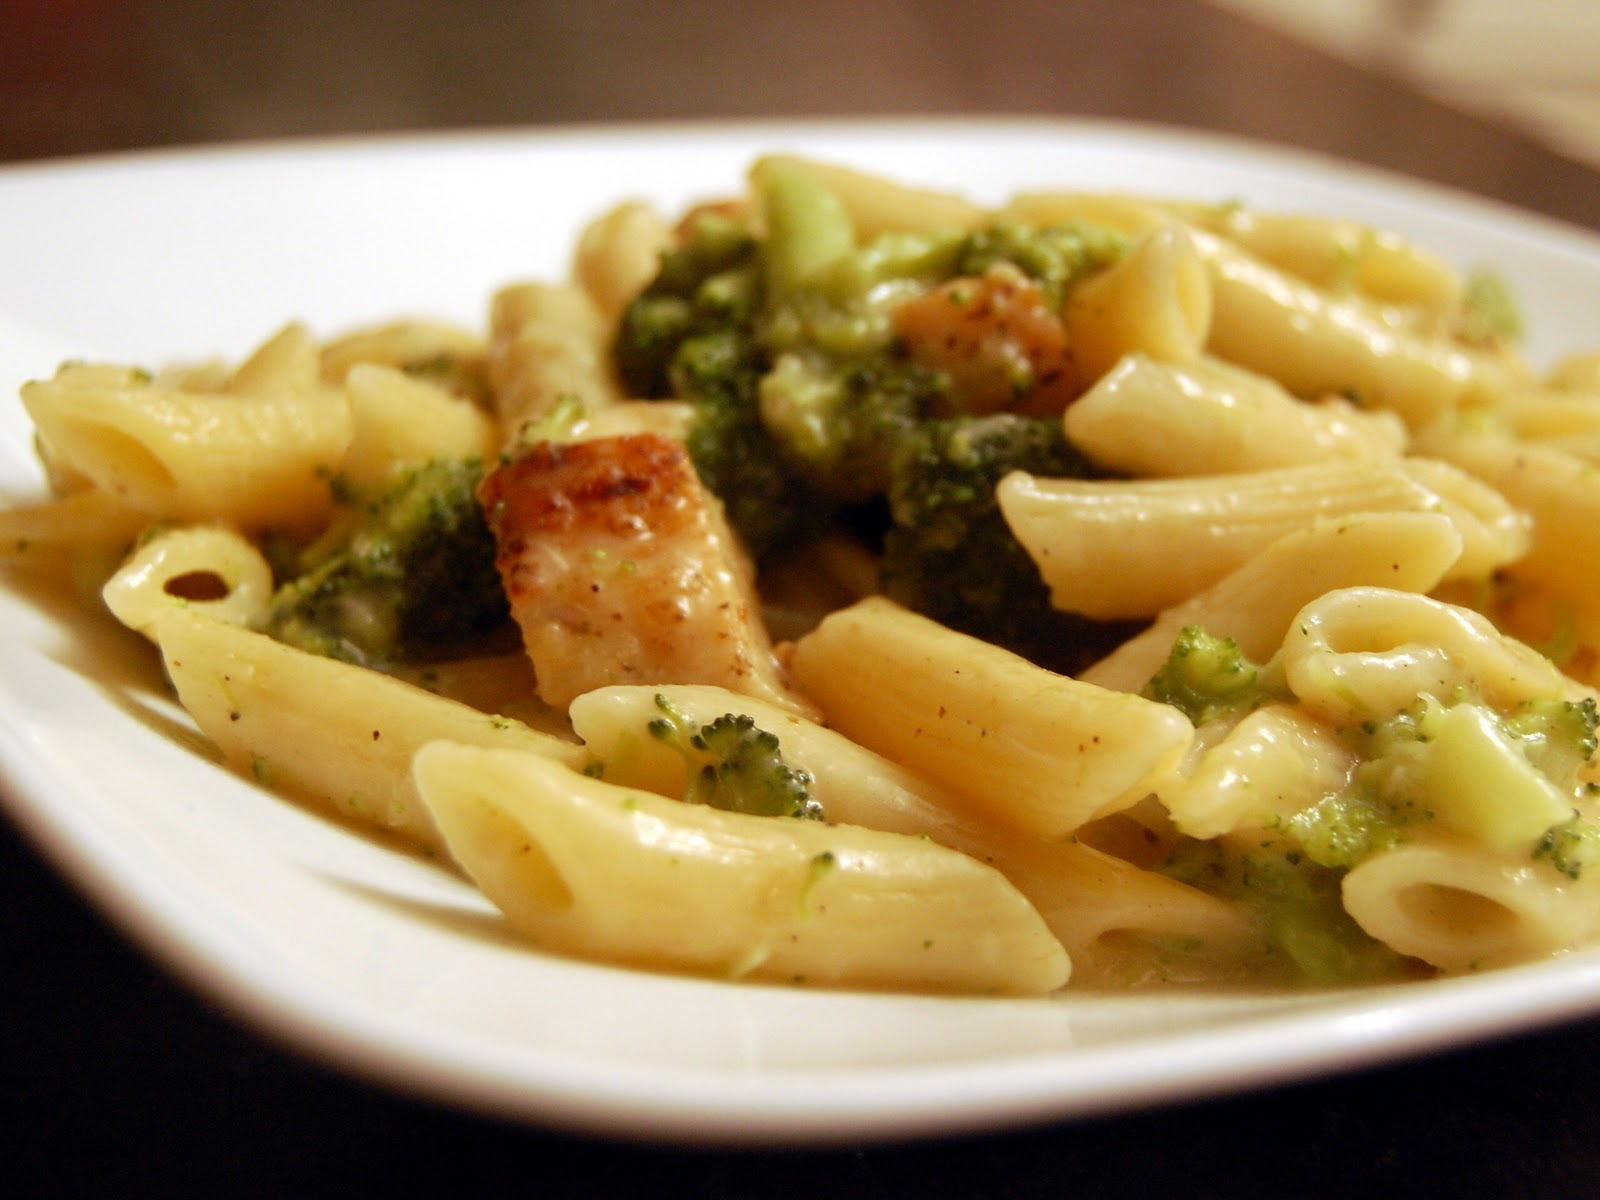 ... Chicken and Broccoli Pasta in Roasted Garlic, White Wine, and White